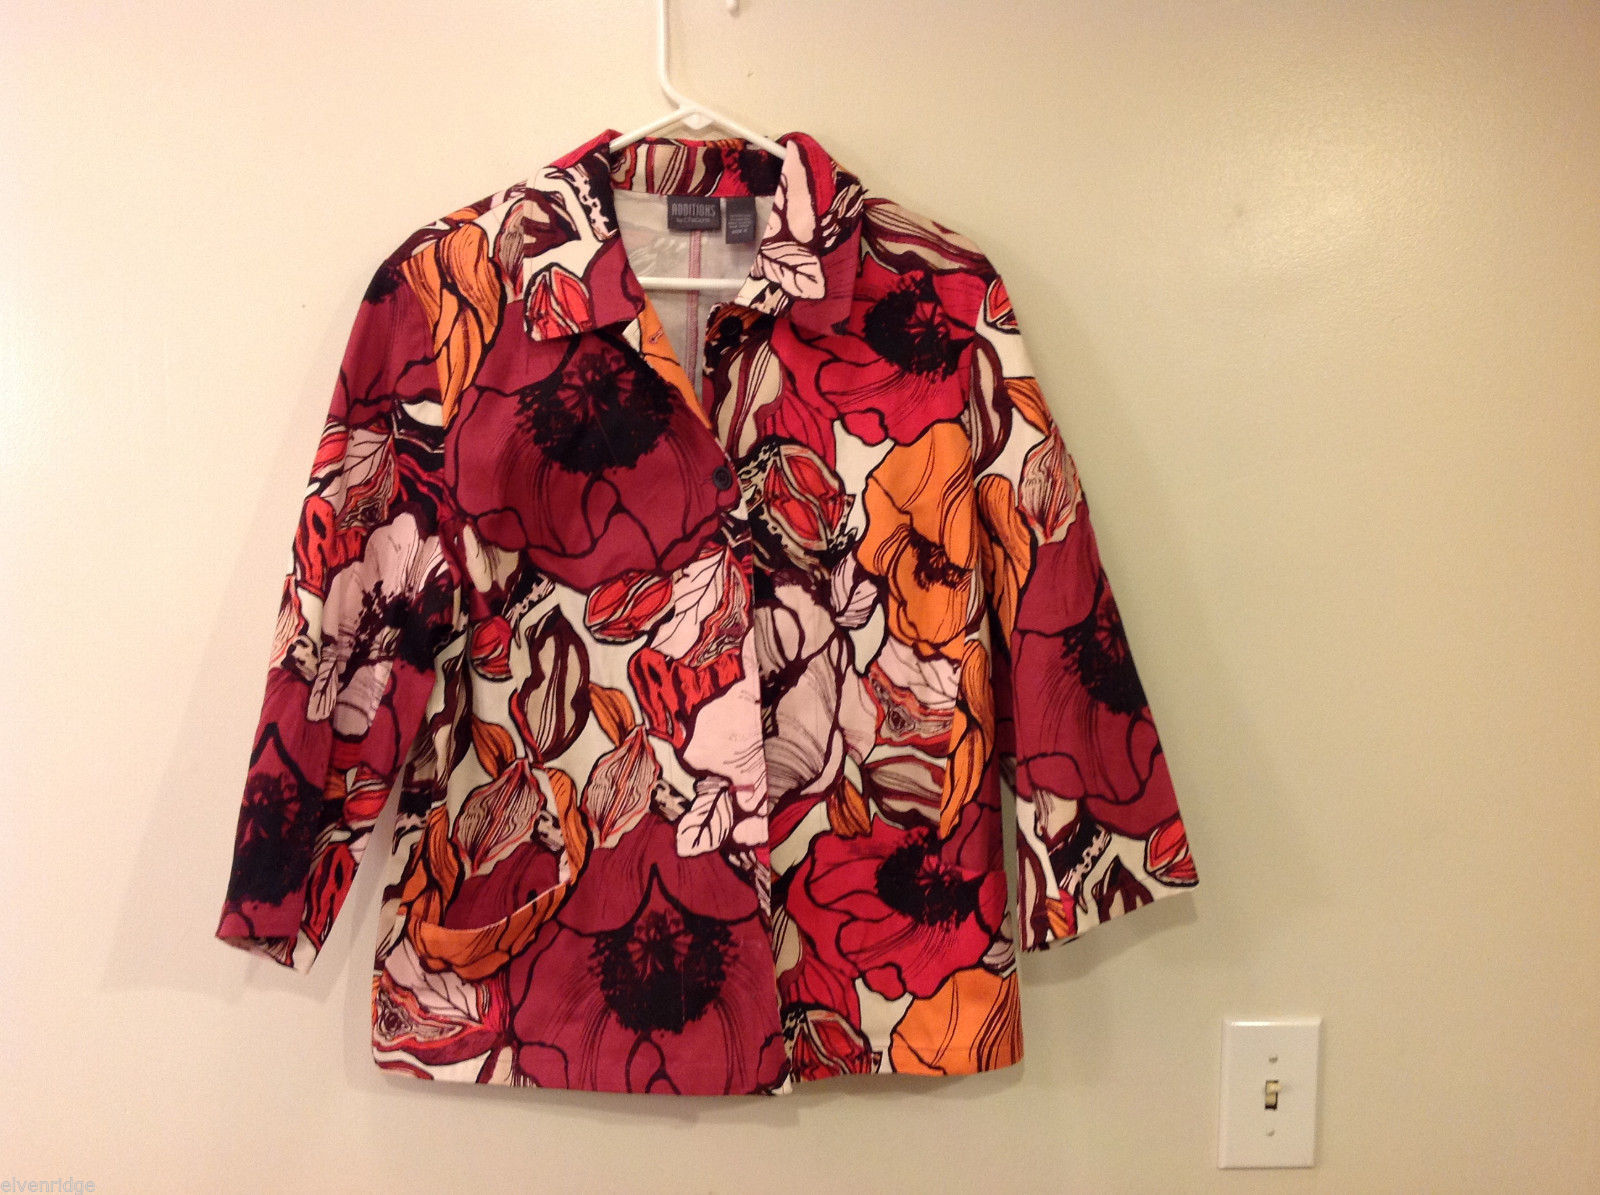 Additions by Chico's Womens' Size 3 Floral Print Shirt in Red Orange Black White